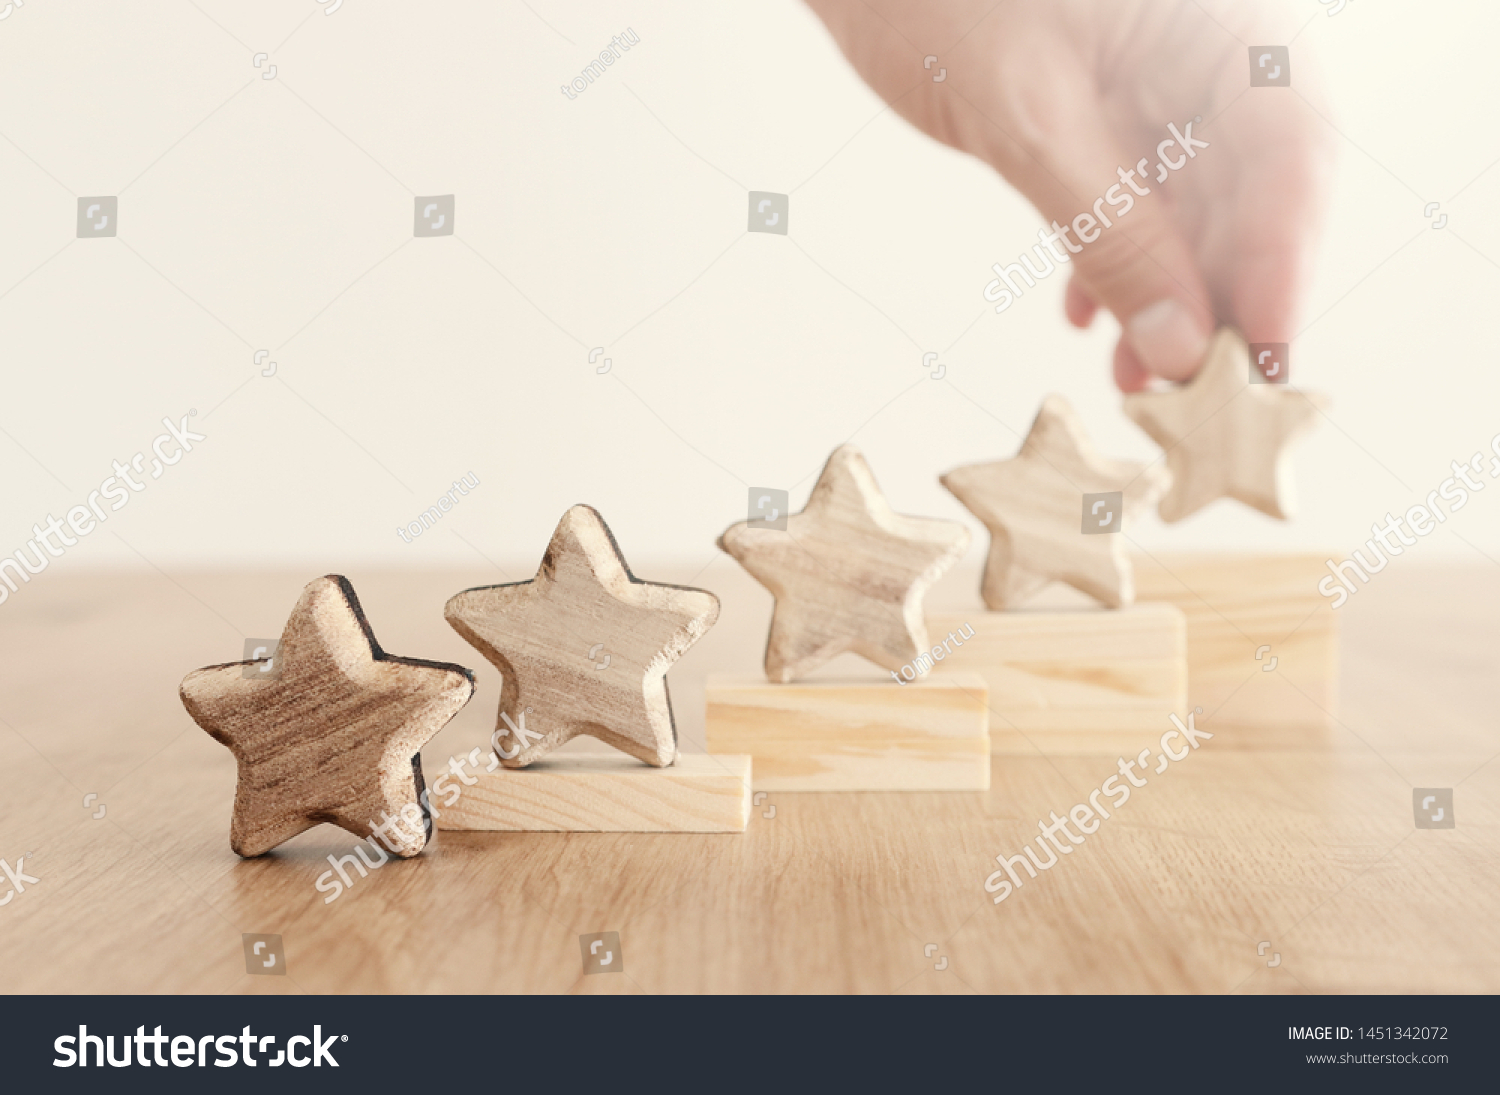 business concept image of setting a five star goal. increase rating or ranking, evaluation and classification idea #1451342072